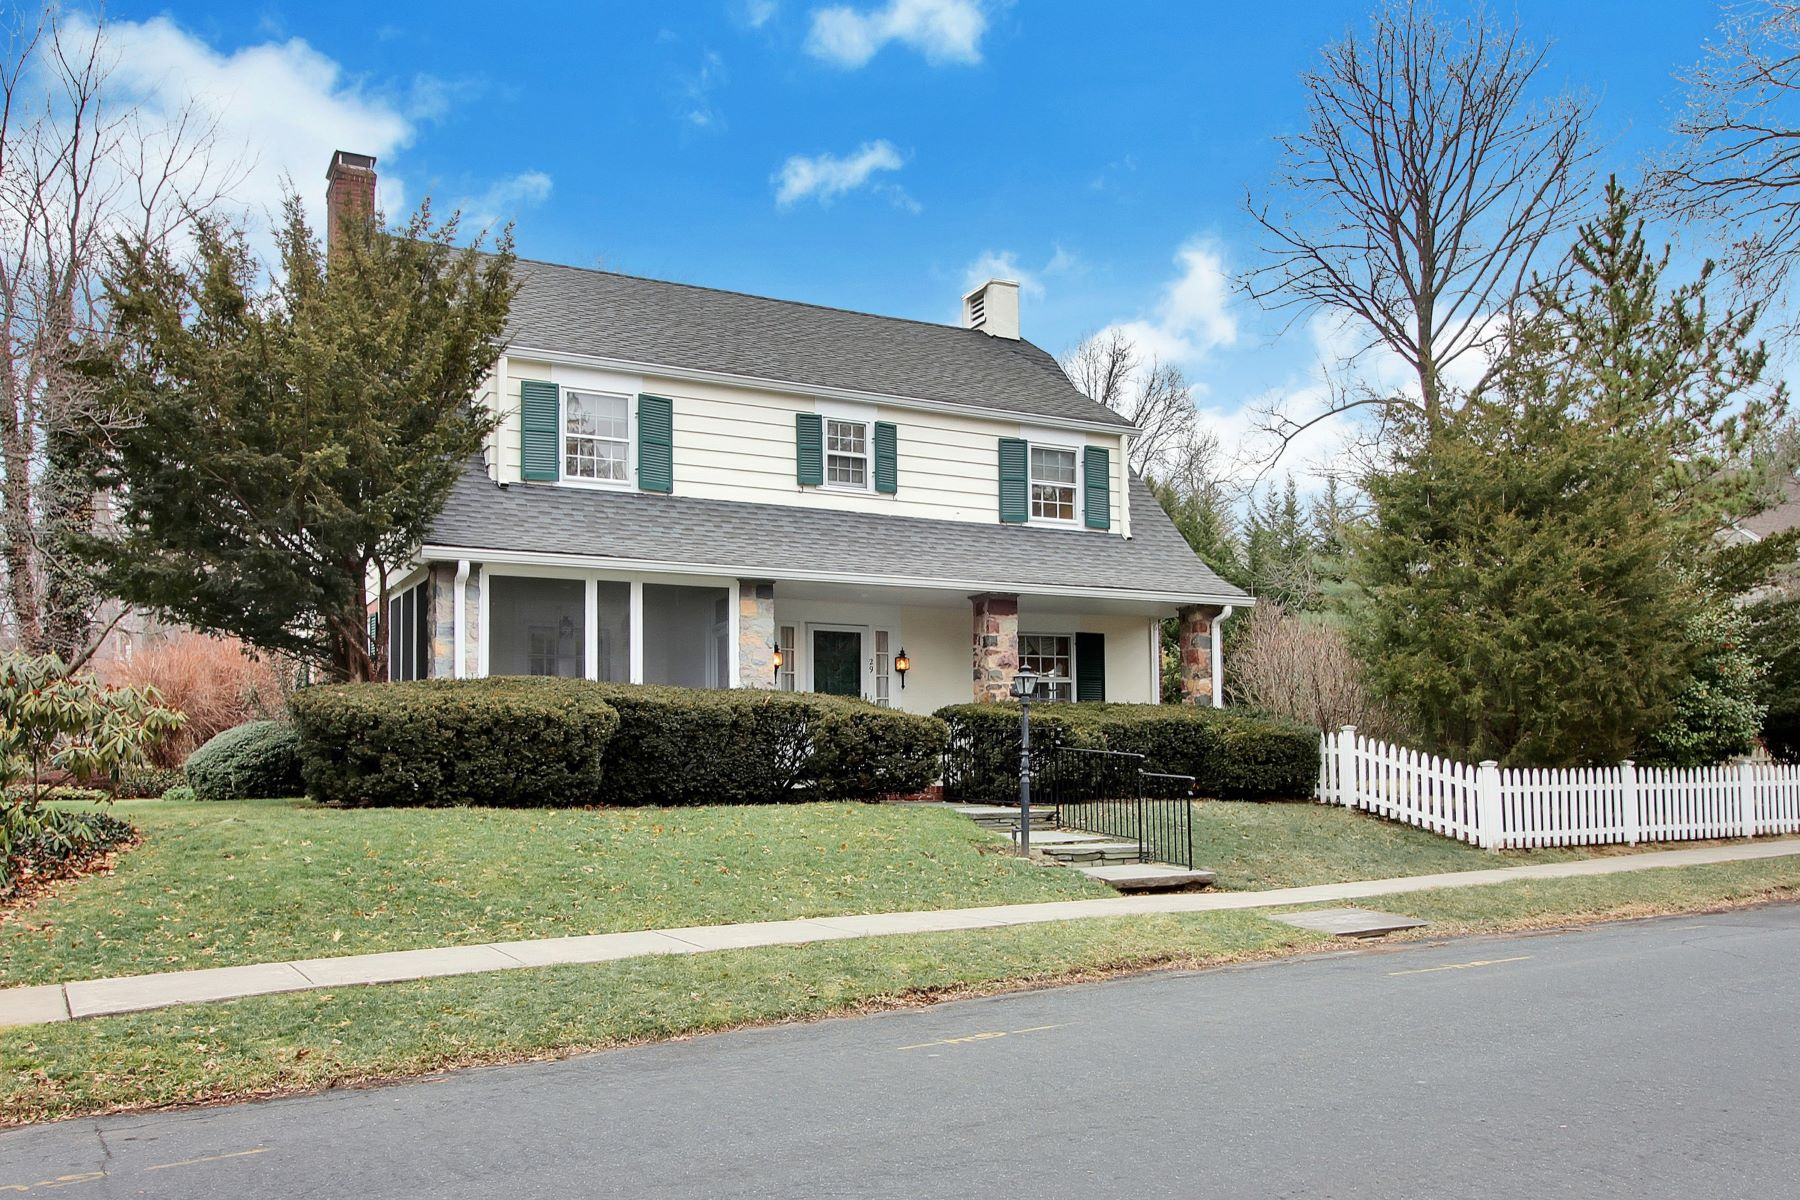 Maison unifamiliale pour l Vente à Gracious Center Hall Colonial 29 Ferncliff Terrace, Short Hills, New Jersey 07078 États-Unis